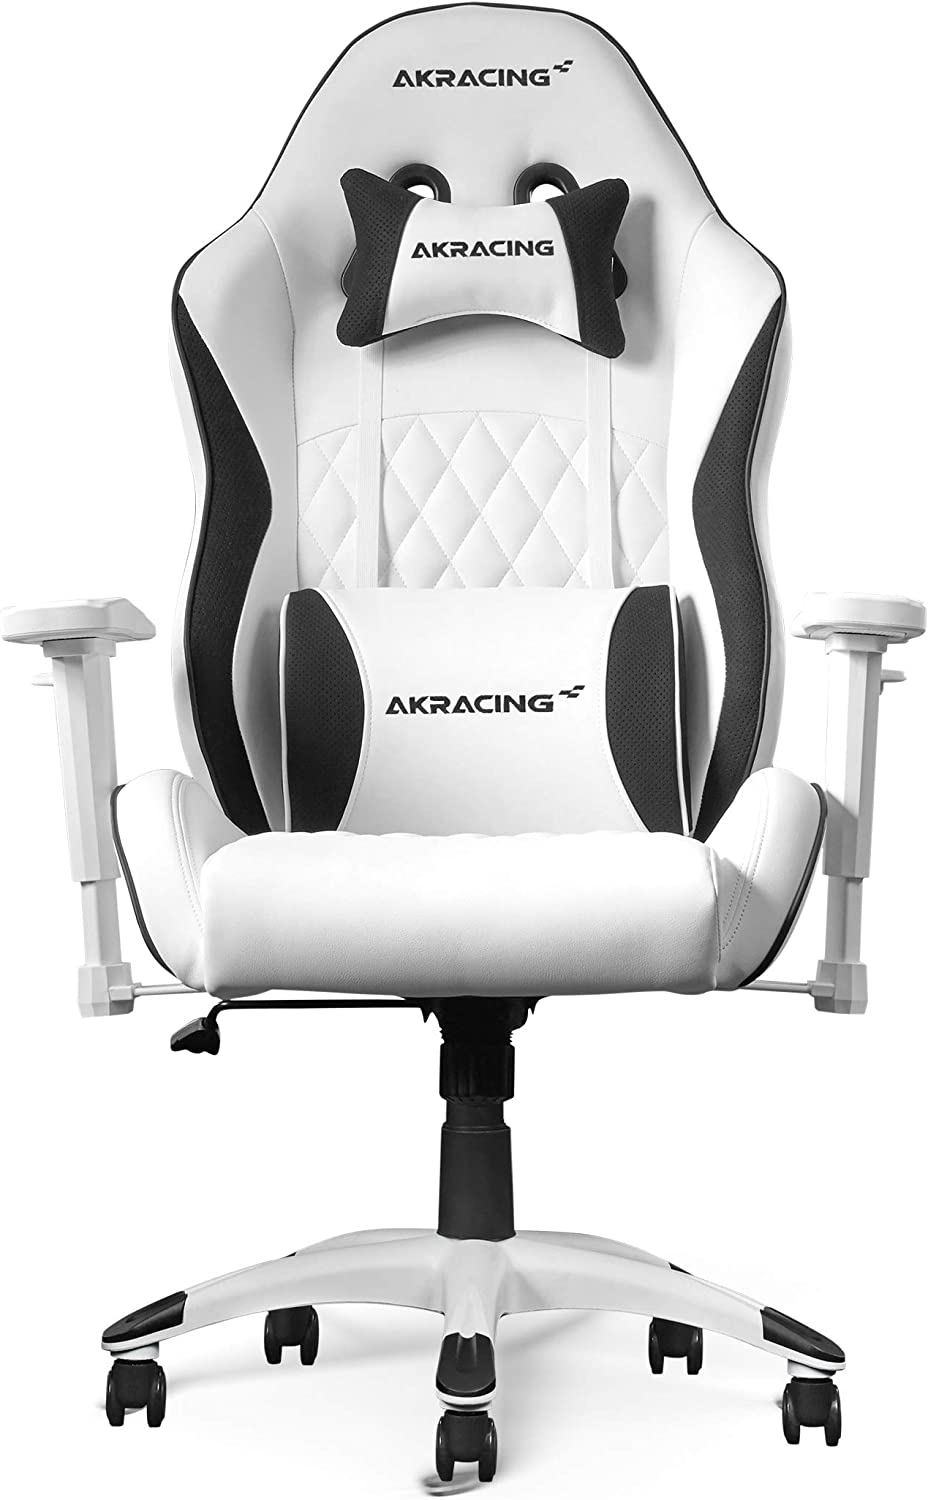 71IVcLhhJUL. AC SL1500 - What Is The Best Gaming Chair For Short Person - ChairPicks